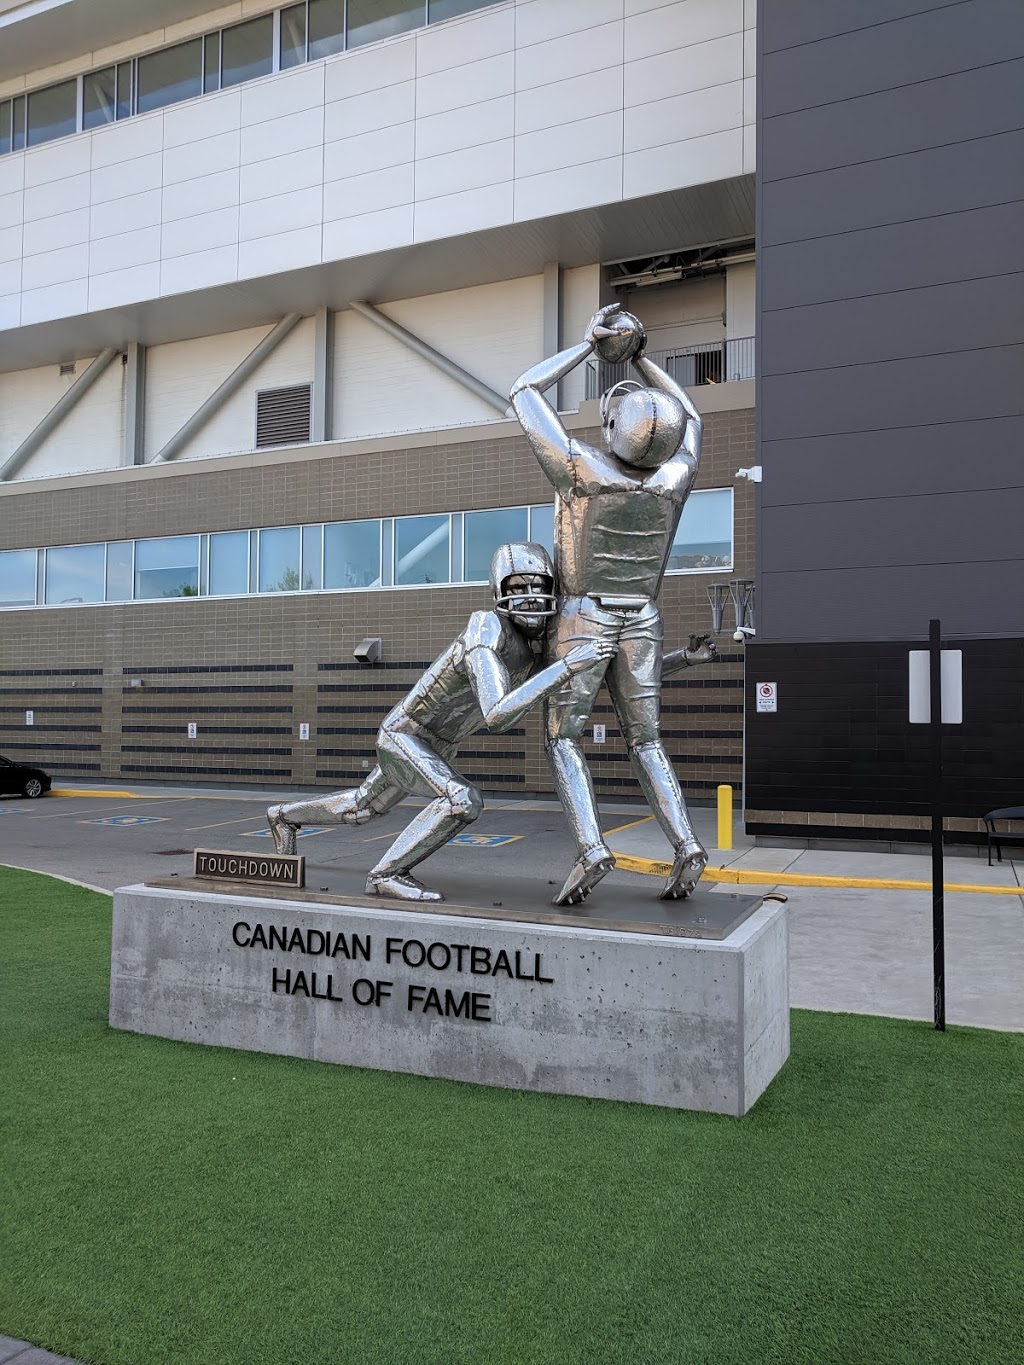 Canadian Football Hall of Fame & Museum | museum | 64 Melrose Ave N, Hamilton, ON L8L 8C1, Canada | 9055287566 OR +1 905-528-7566